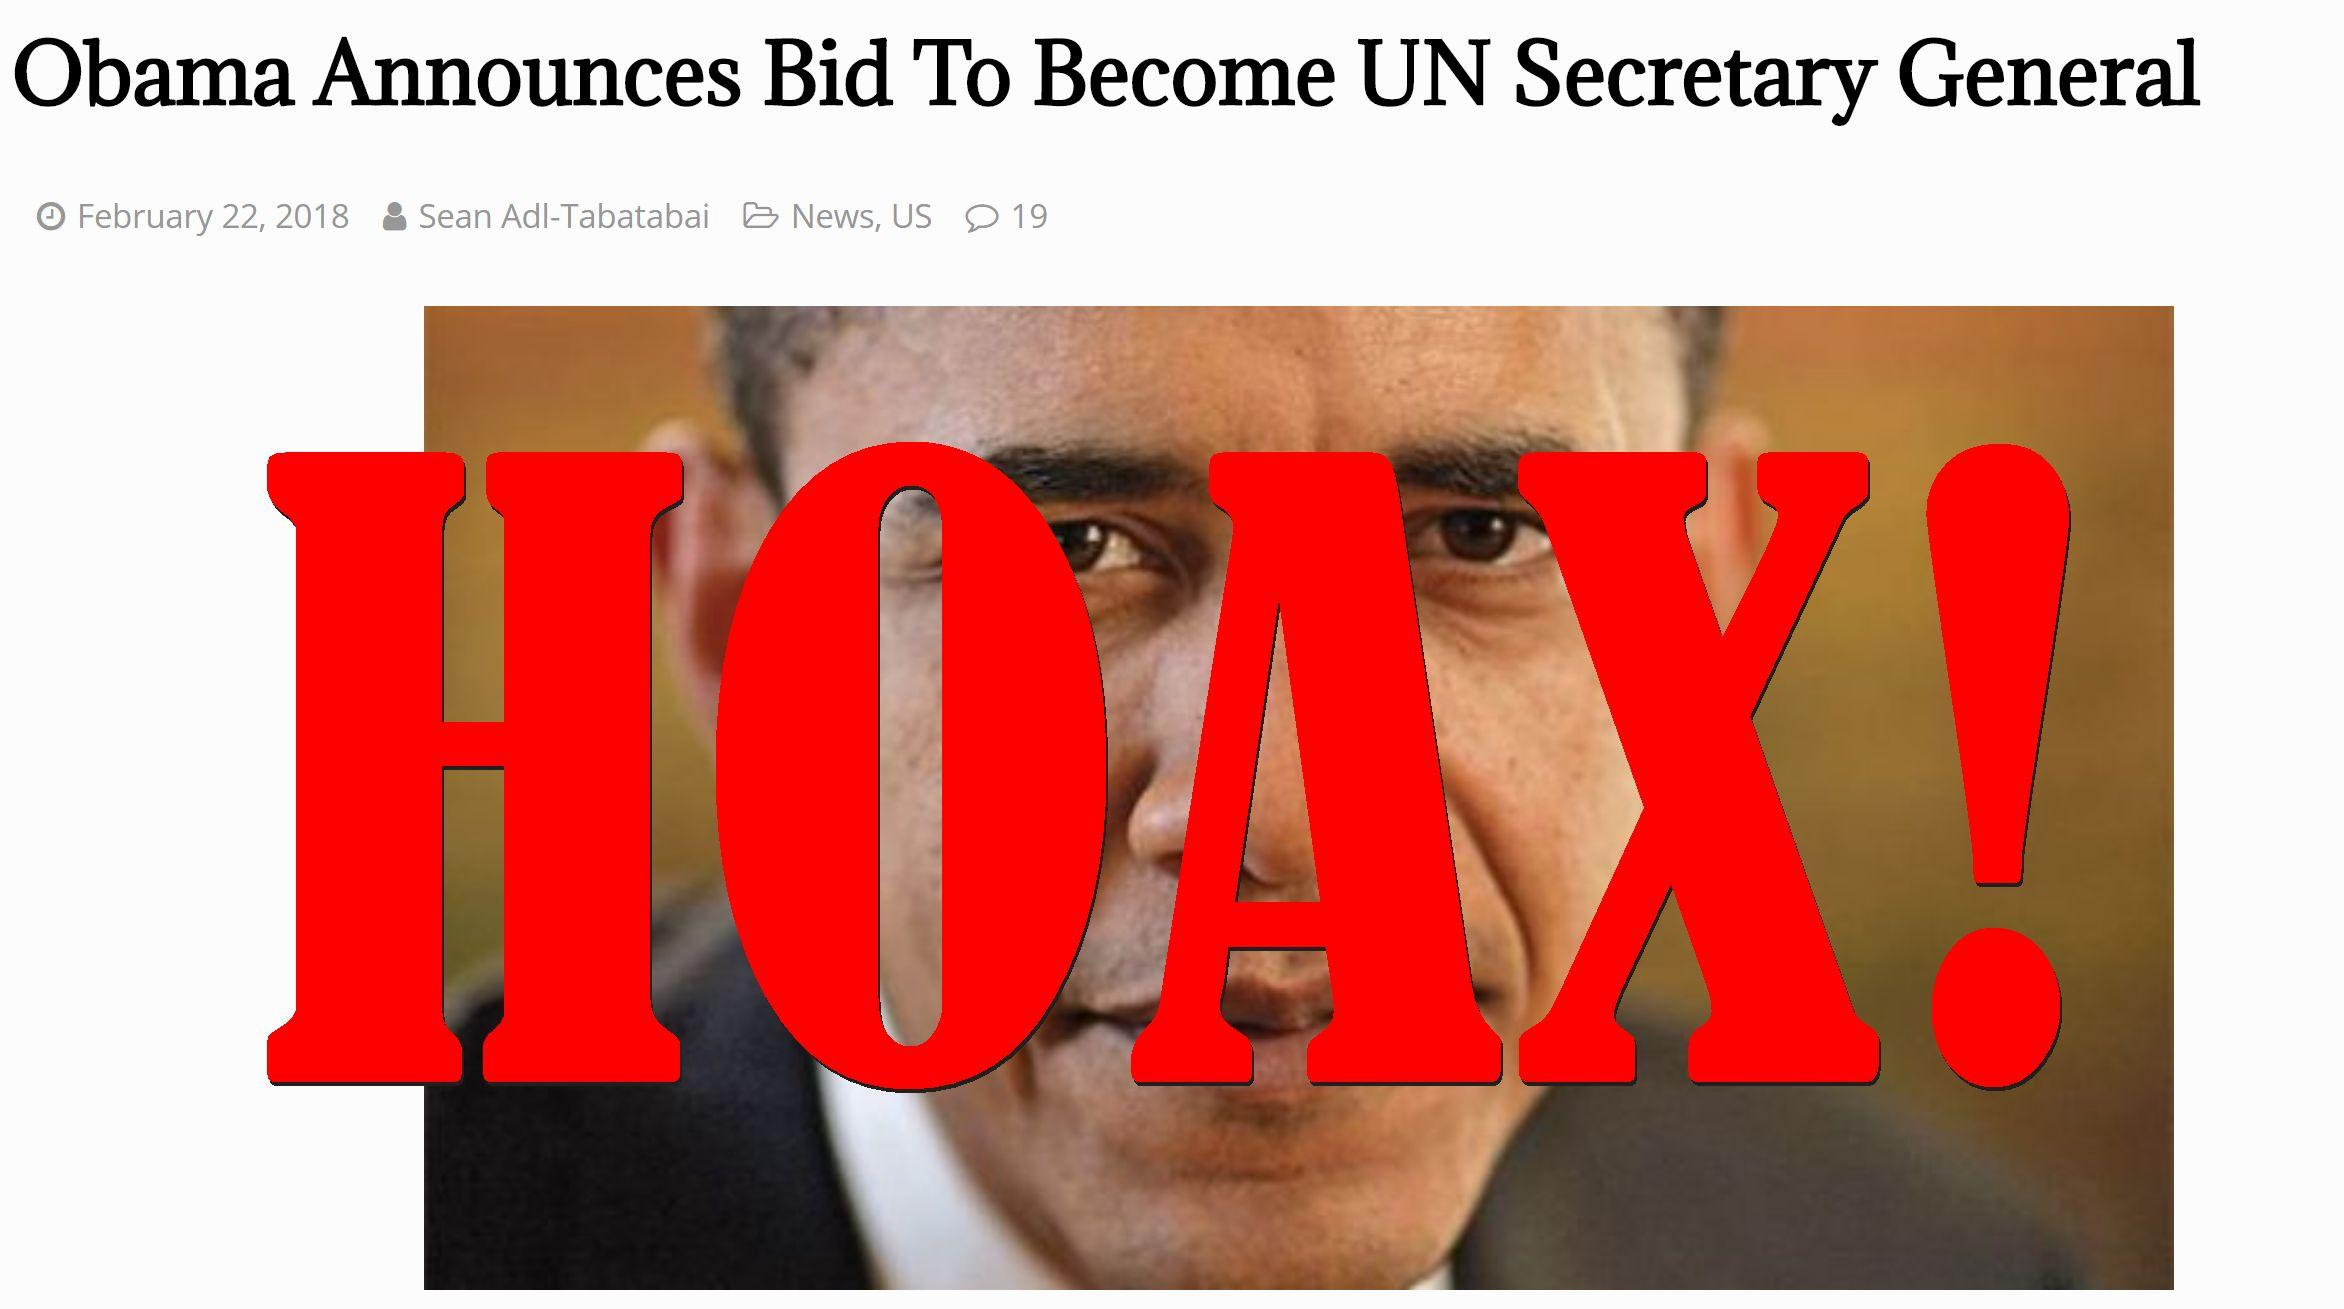 Fake News: Obama Did NOT Announce Bid To Become UN Secretary General